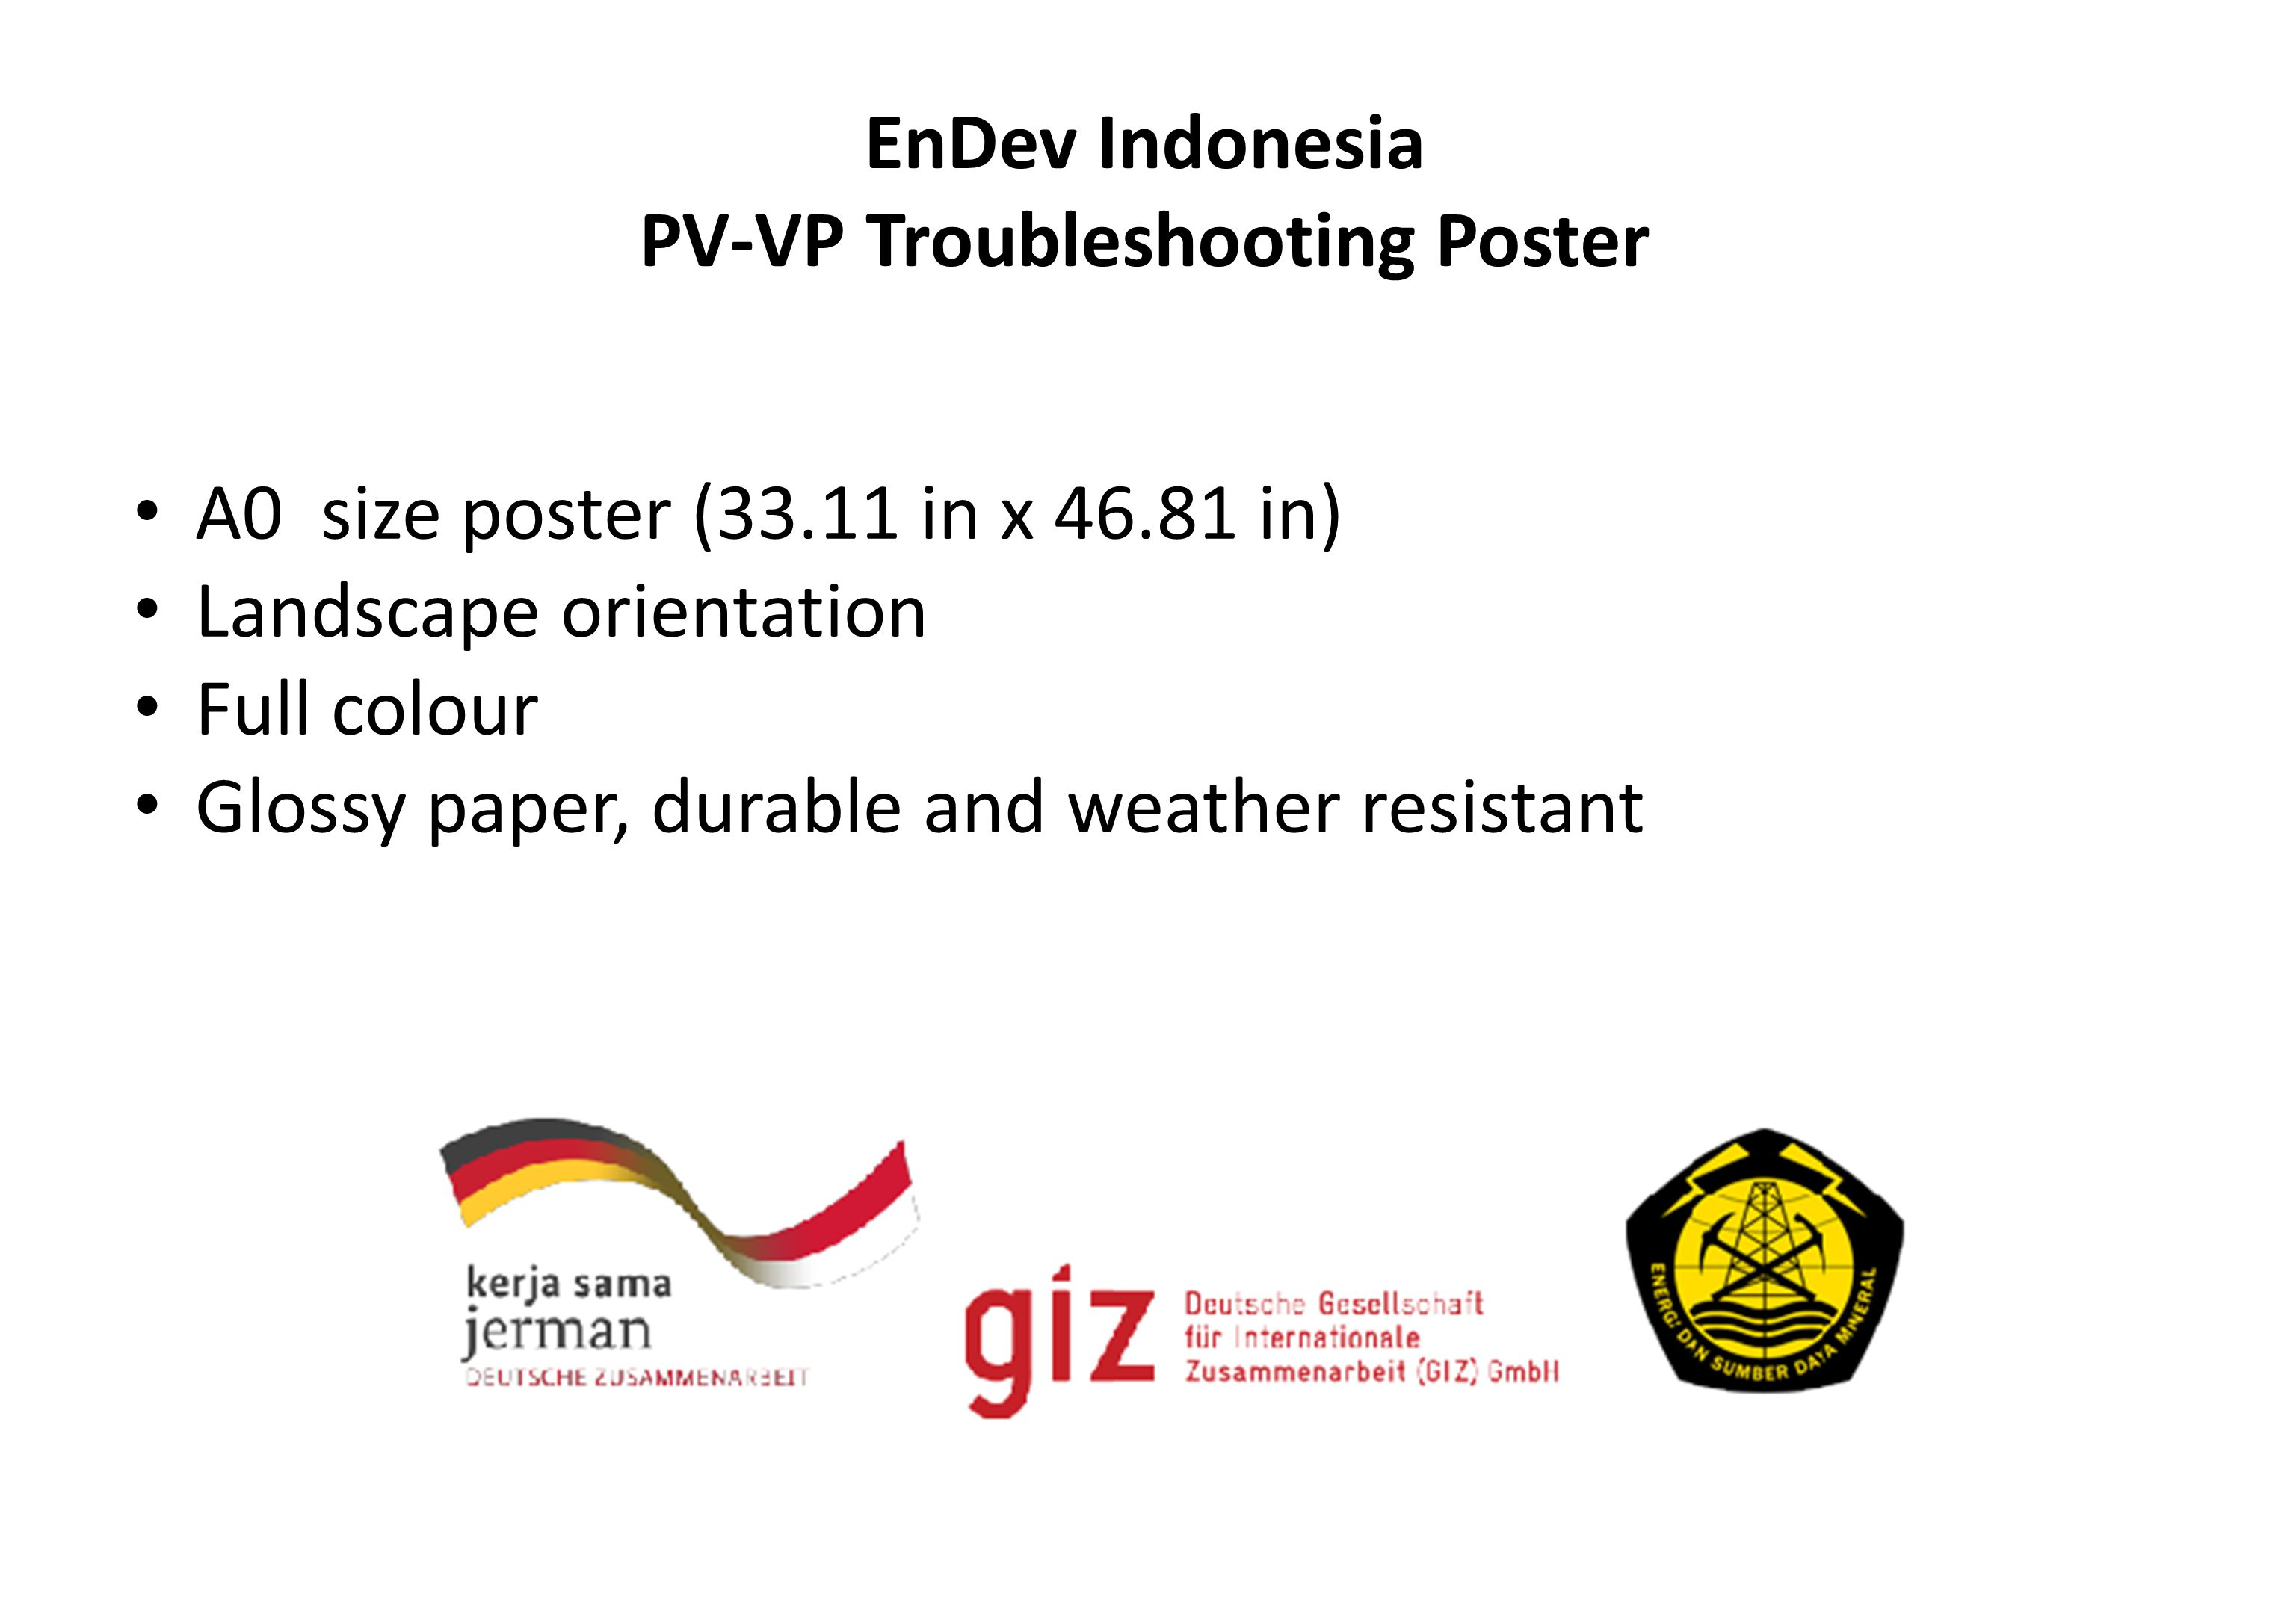 EnDev Indonesia PV-VP Troubleshooting Poster A0 size poster (33.11 in x 46.81 in) Landscape orientation Full colour Glossy paper, durable and weather resistant